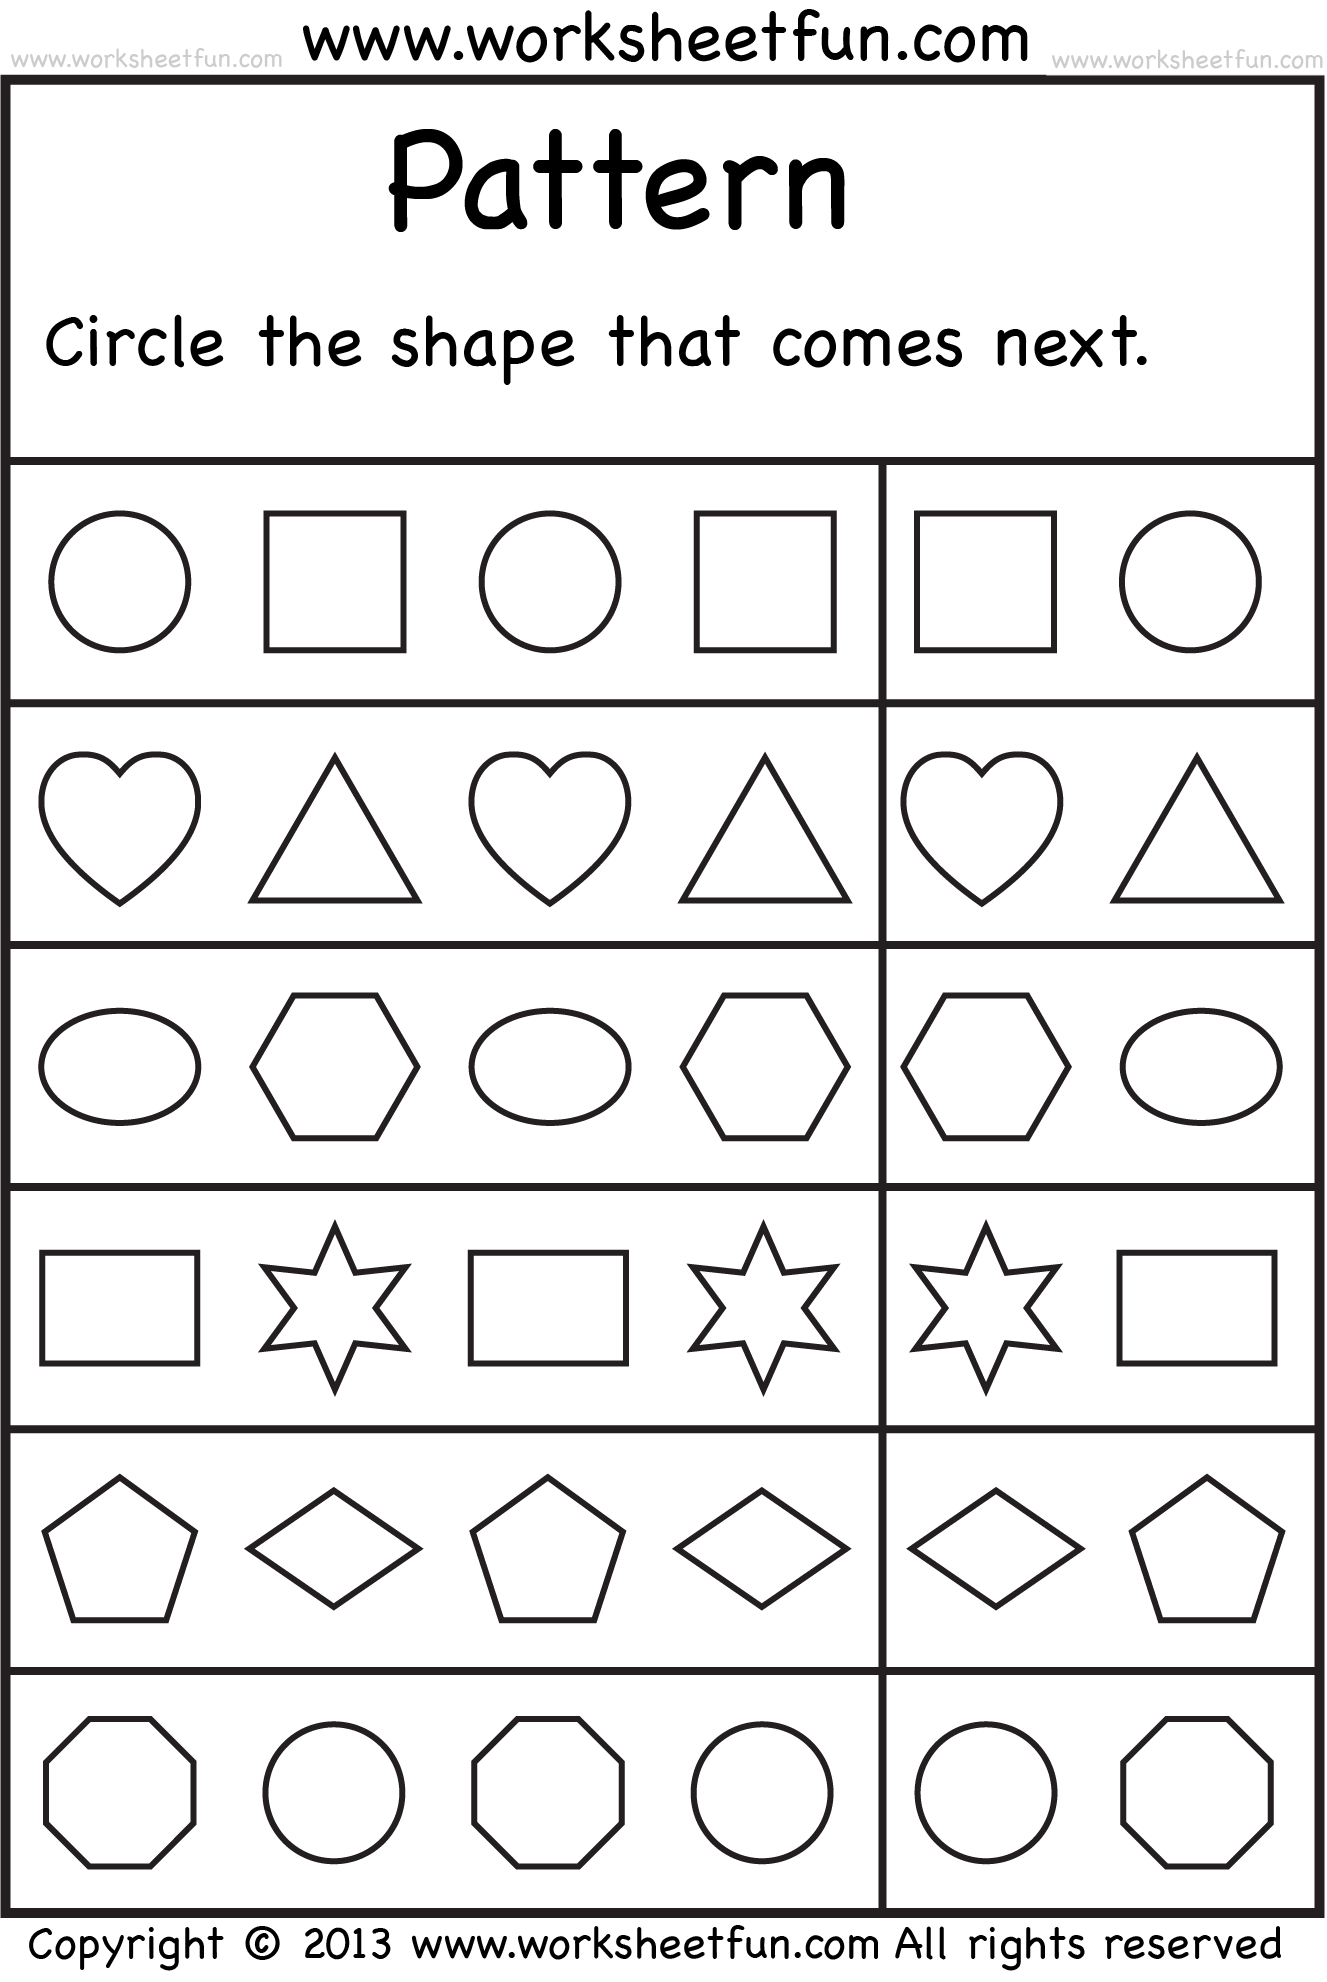 Weirdmailus  Gorgeous  Images About School Worksheets On Pinterest  Number Words  With Marvelous  Images About School Worksheets On Pinterest  Number Words Alphabet Worksheets And Free Printable Kindergarten Worksheets With Attractive Finding The Circumference Of A Circle Worksheets Also Surface Area With Nets Worksheet In Addition Load Calculation Worksheet And Cognitive Reframing Worksheet As Well As Temporal Concepts Worksheets Additionally Food Web Activity Worksheet From Pinterestcom With Weirdmailus  Marvelous  Images About School Worksheets On Pinterest  Number Words  With Attractive  Images About School Worksheets On Pinterest  Number Words Alphabet Worksheets And Free Printable Kindergarten Worksheets And Gorgeous Finding The Circumference Of A Circle Worksheets Also Surface Area With Nets Worksheet In Addition Load Calculation Worksheet From Pinterestcom